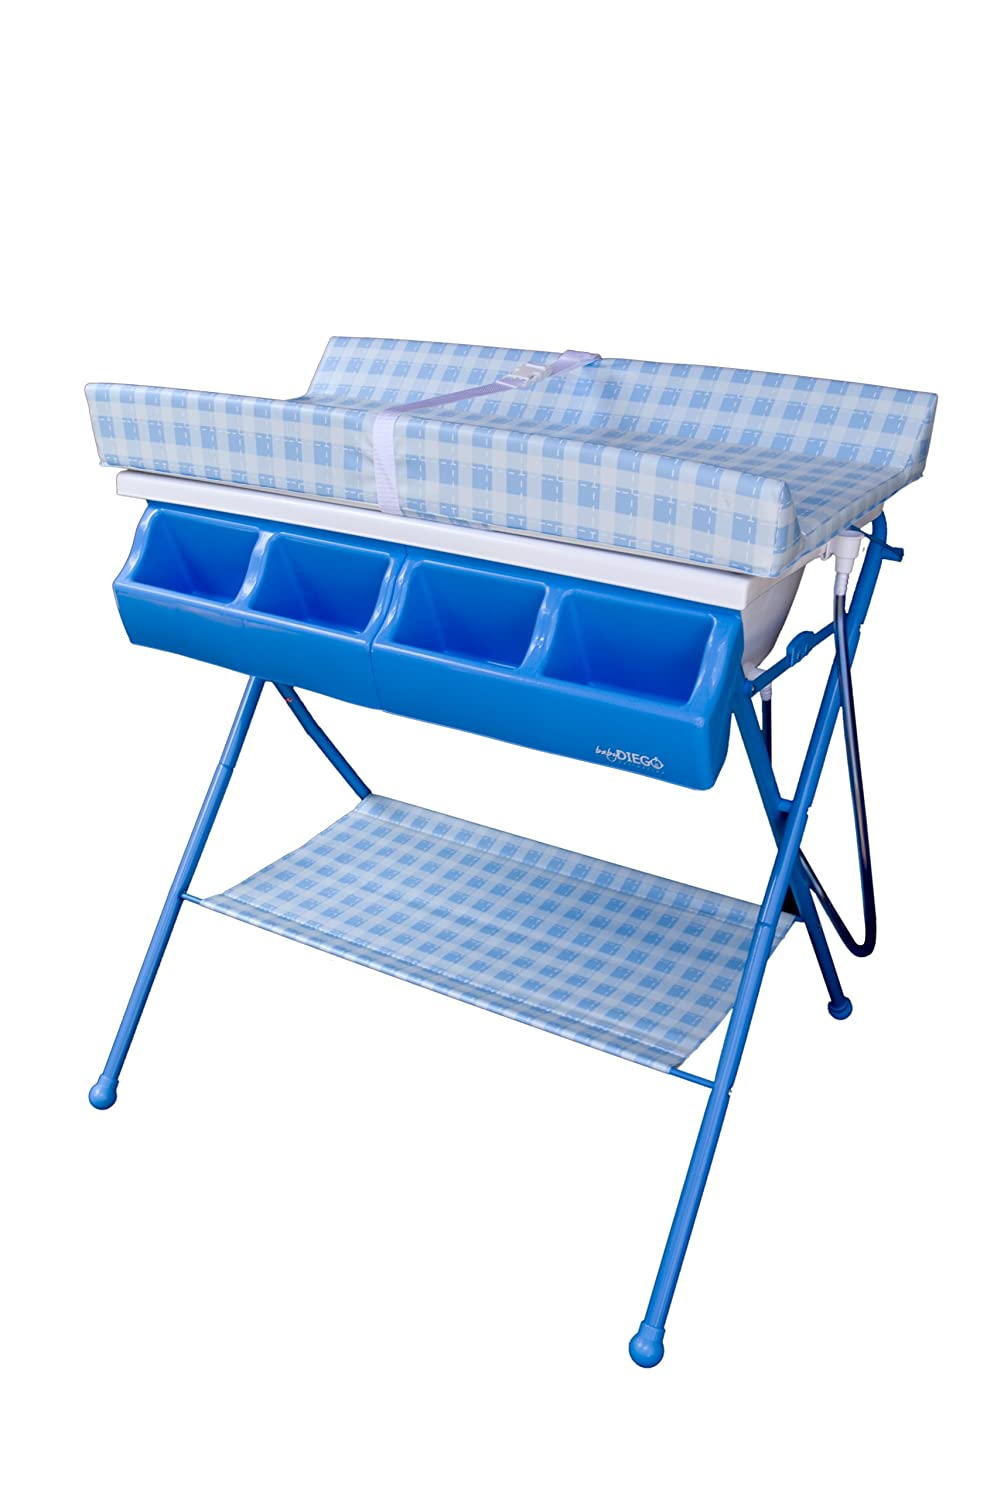 Amazon.com : Baby Diego Bathinette Standard, Blue : Baby Bathing Seats And  Tubs : Baby